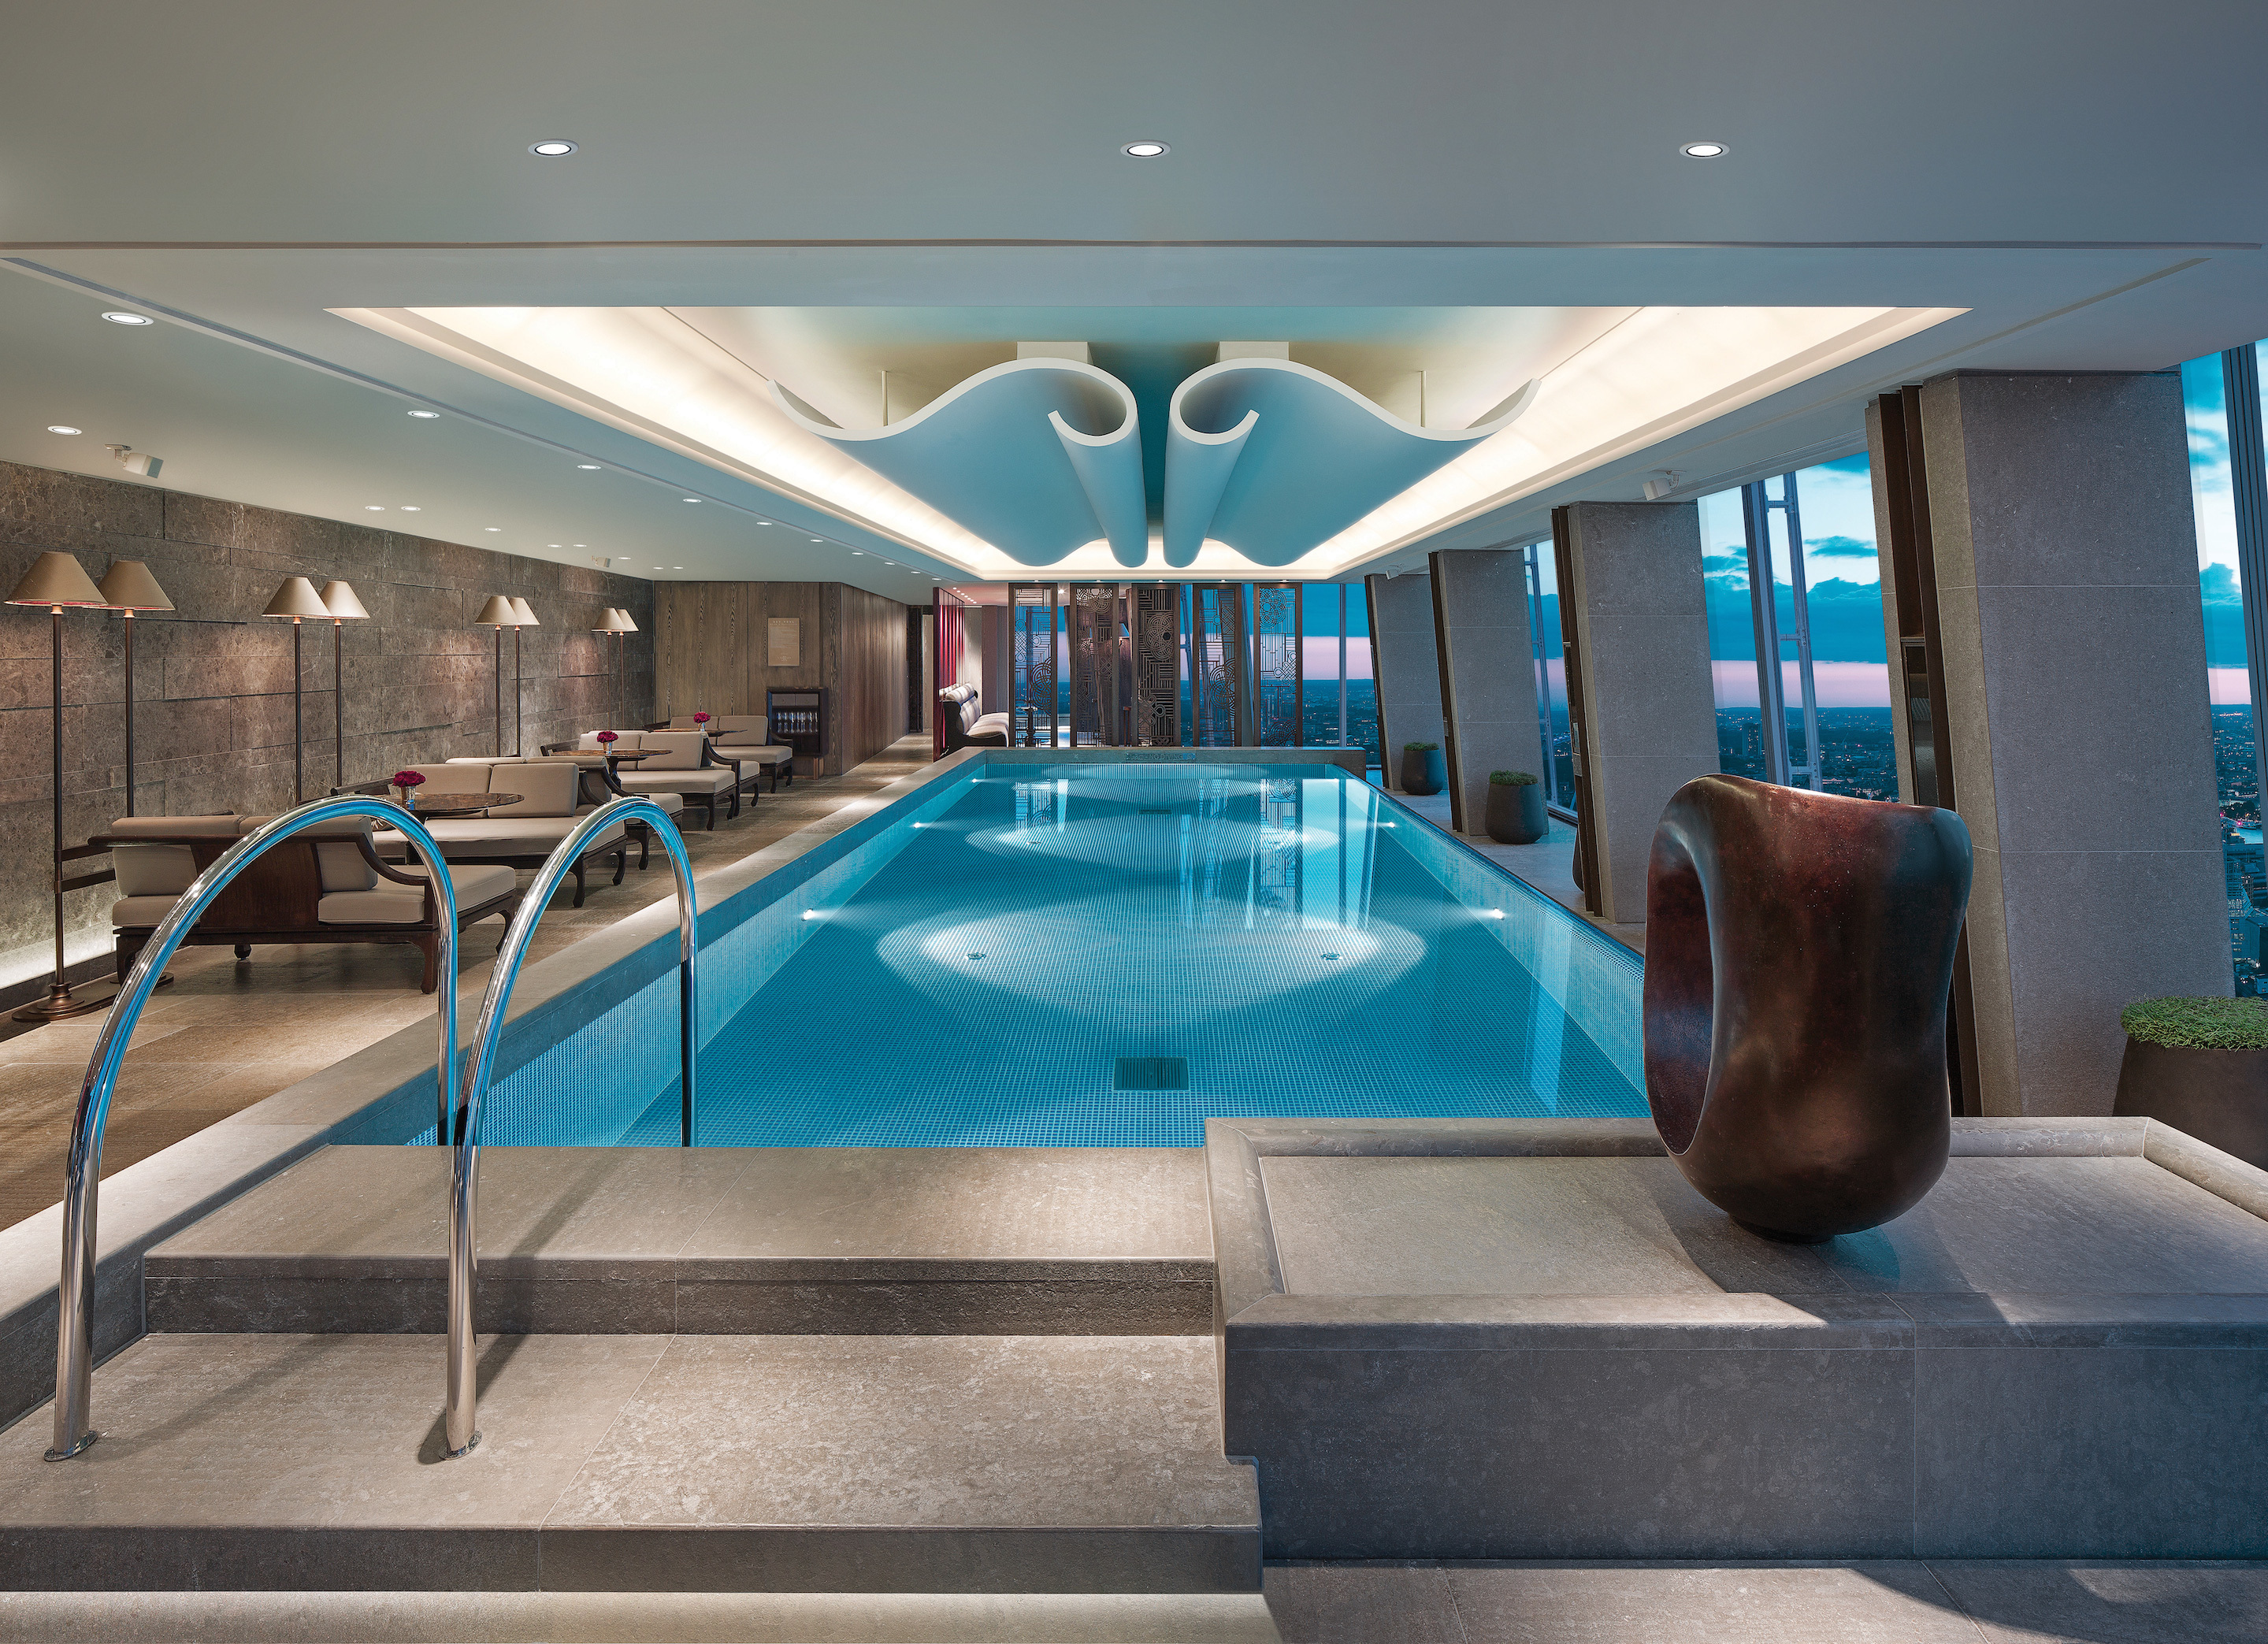 Cash Pool London 10 Five Star Hotels For Luxury Living London S Best 5 Star Hotels